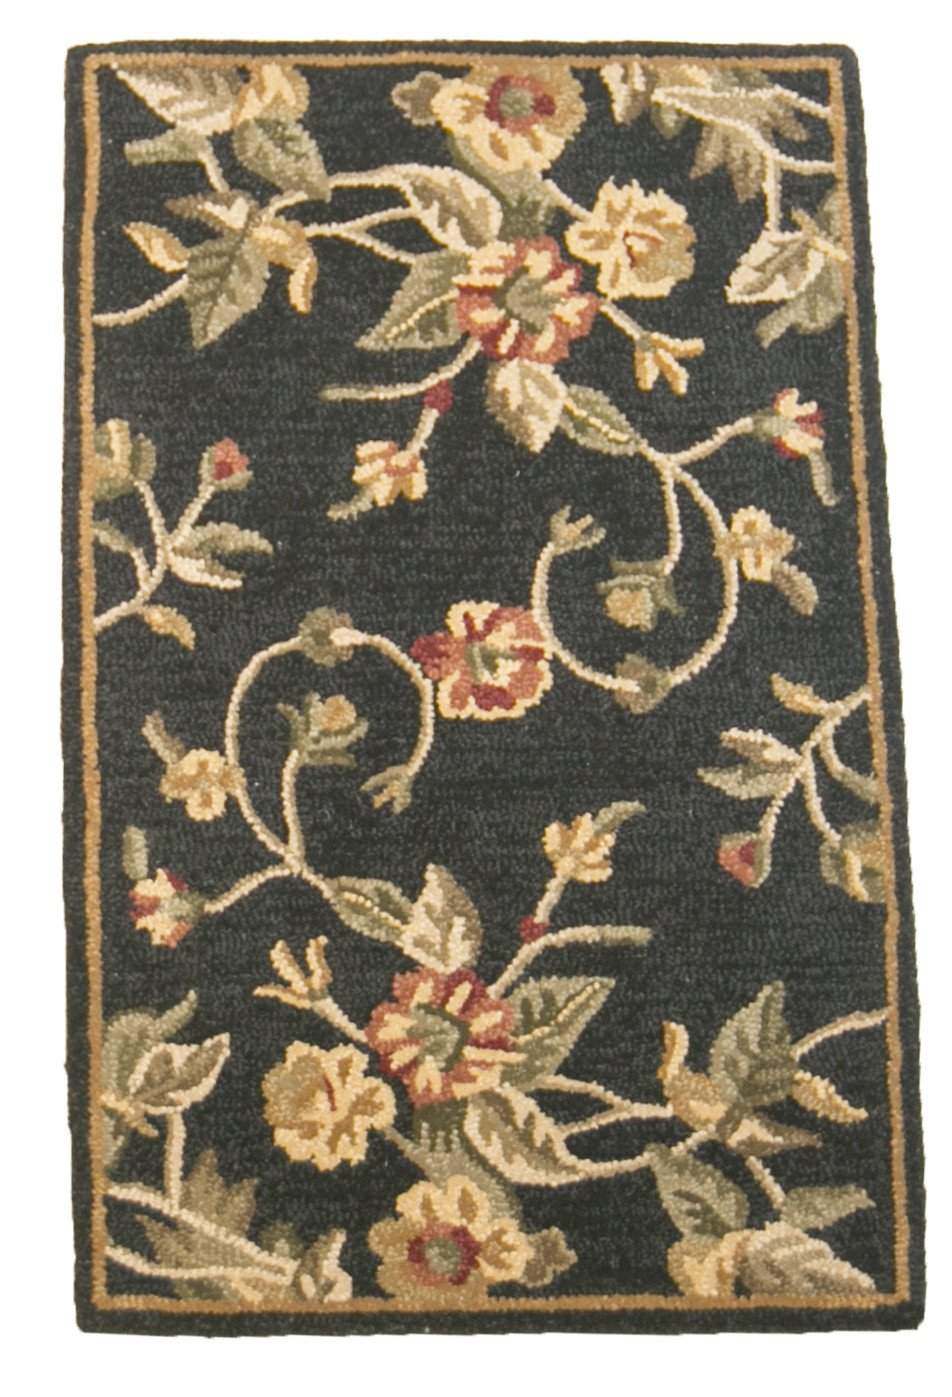 2' x 4' Botanical Black Small Runner Rug